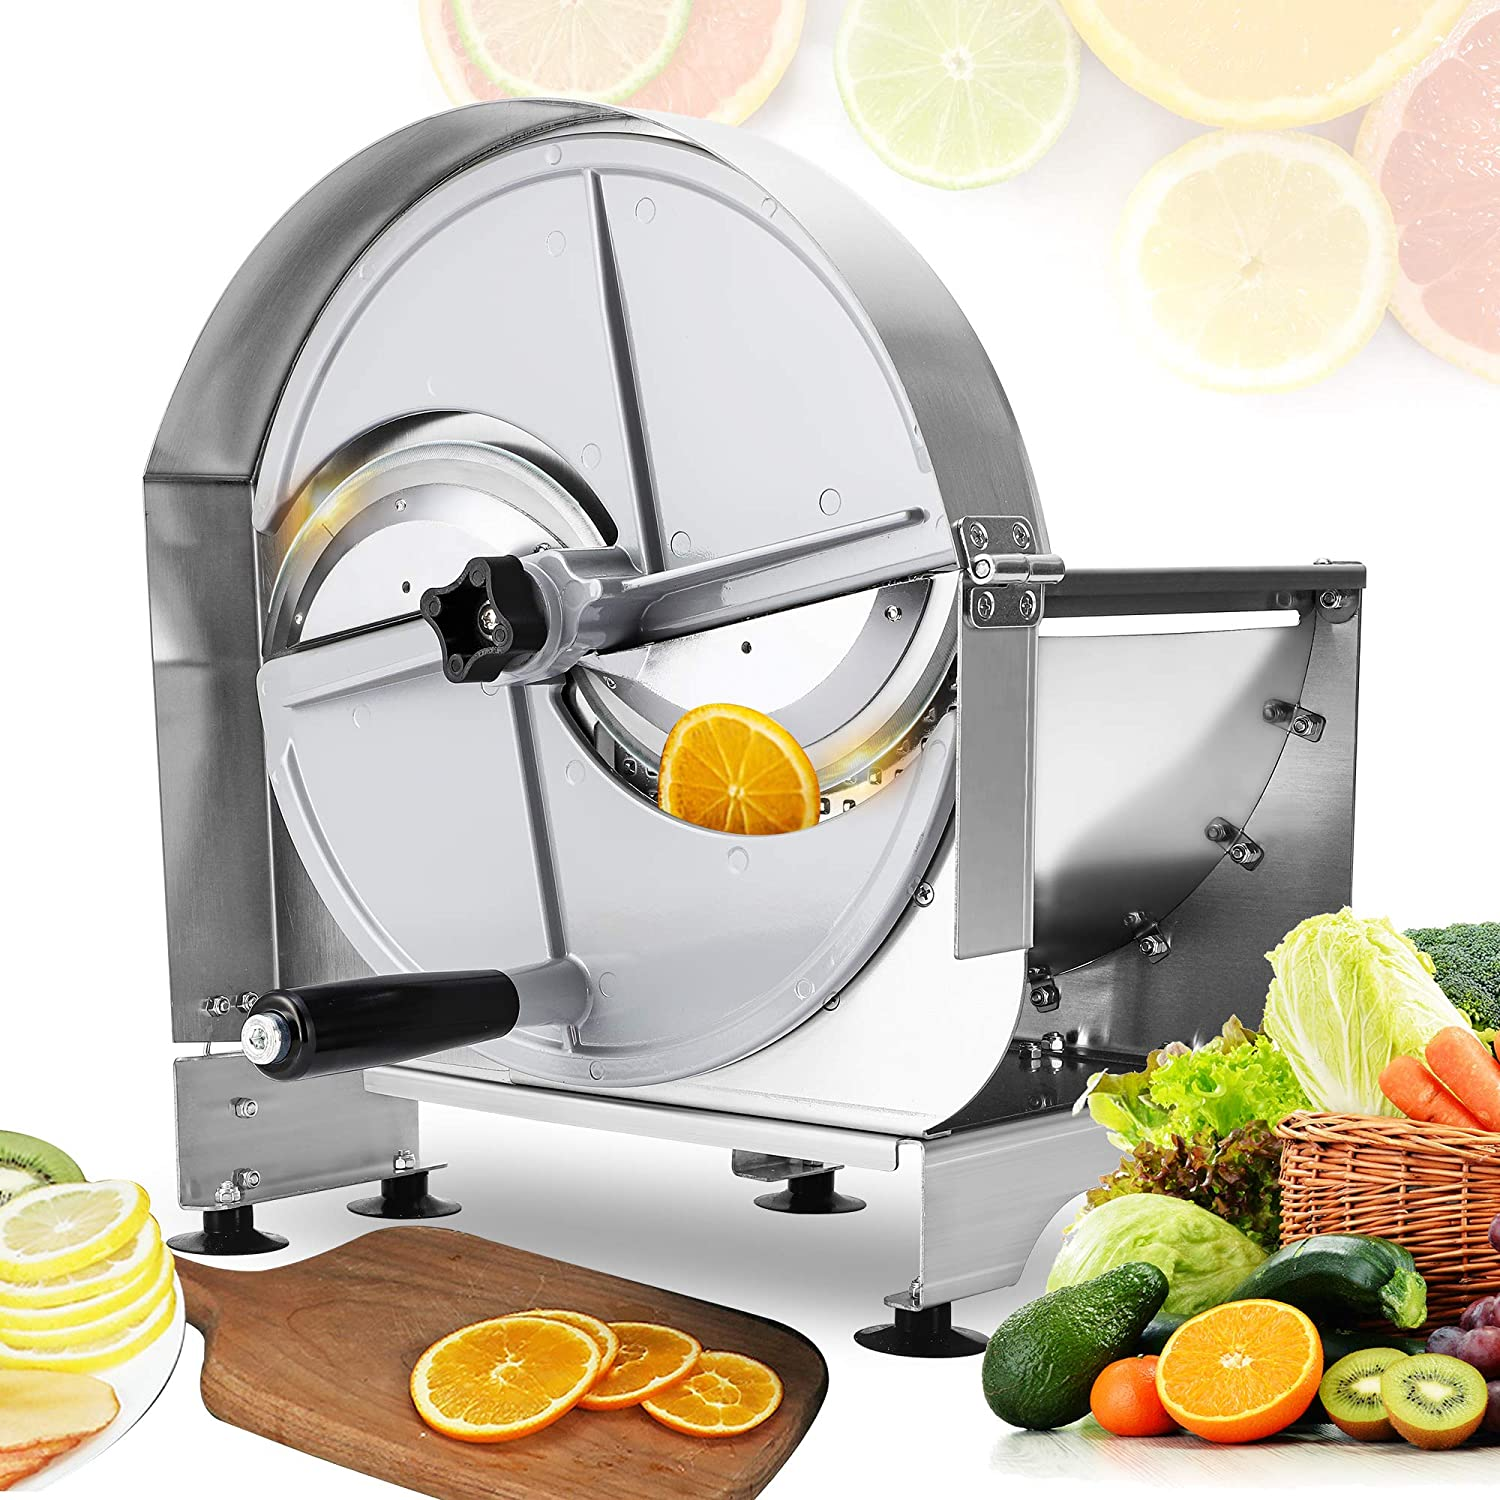 Mxmoonant Commercial Vegetable Slicer Manual Fruit Potato Shredder Adjustable Thickness 0.03-0.47''(0.8-12mm) Stainless Steel Blade for Slicing Onion Ginger Lemon Cabbage